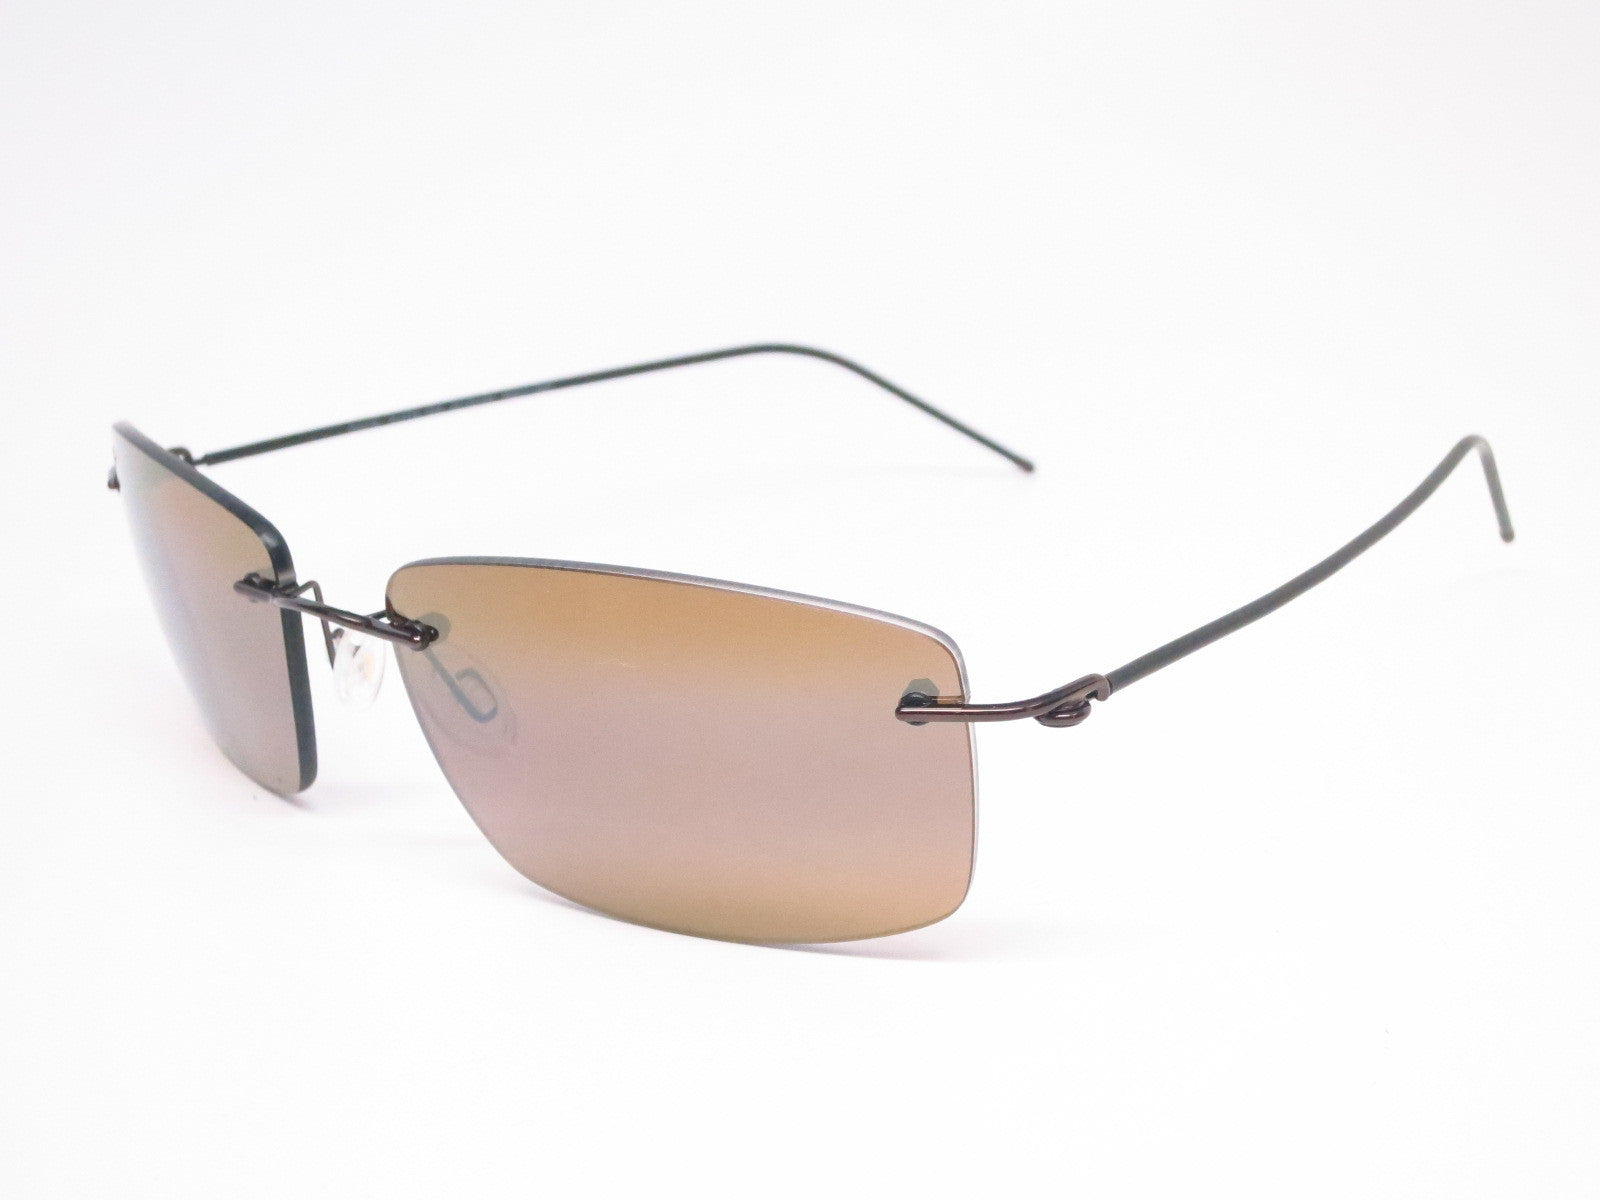 ccfeb3491c7a3 Maui Jim Sandhill H715-25A Gloss Dark Brown   Brown Sleeve Polarized  Sunglasses - Eye ...